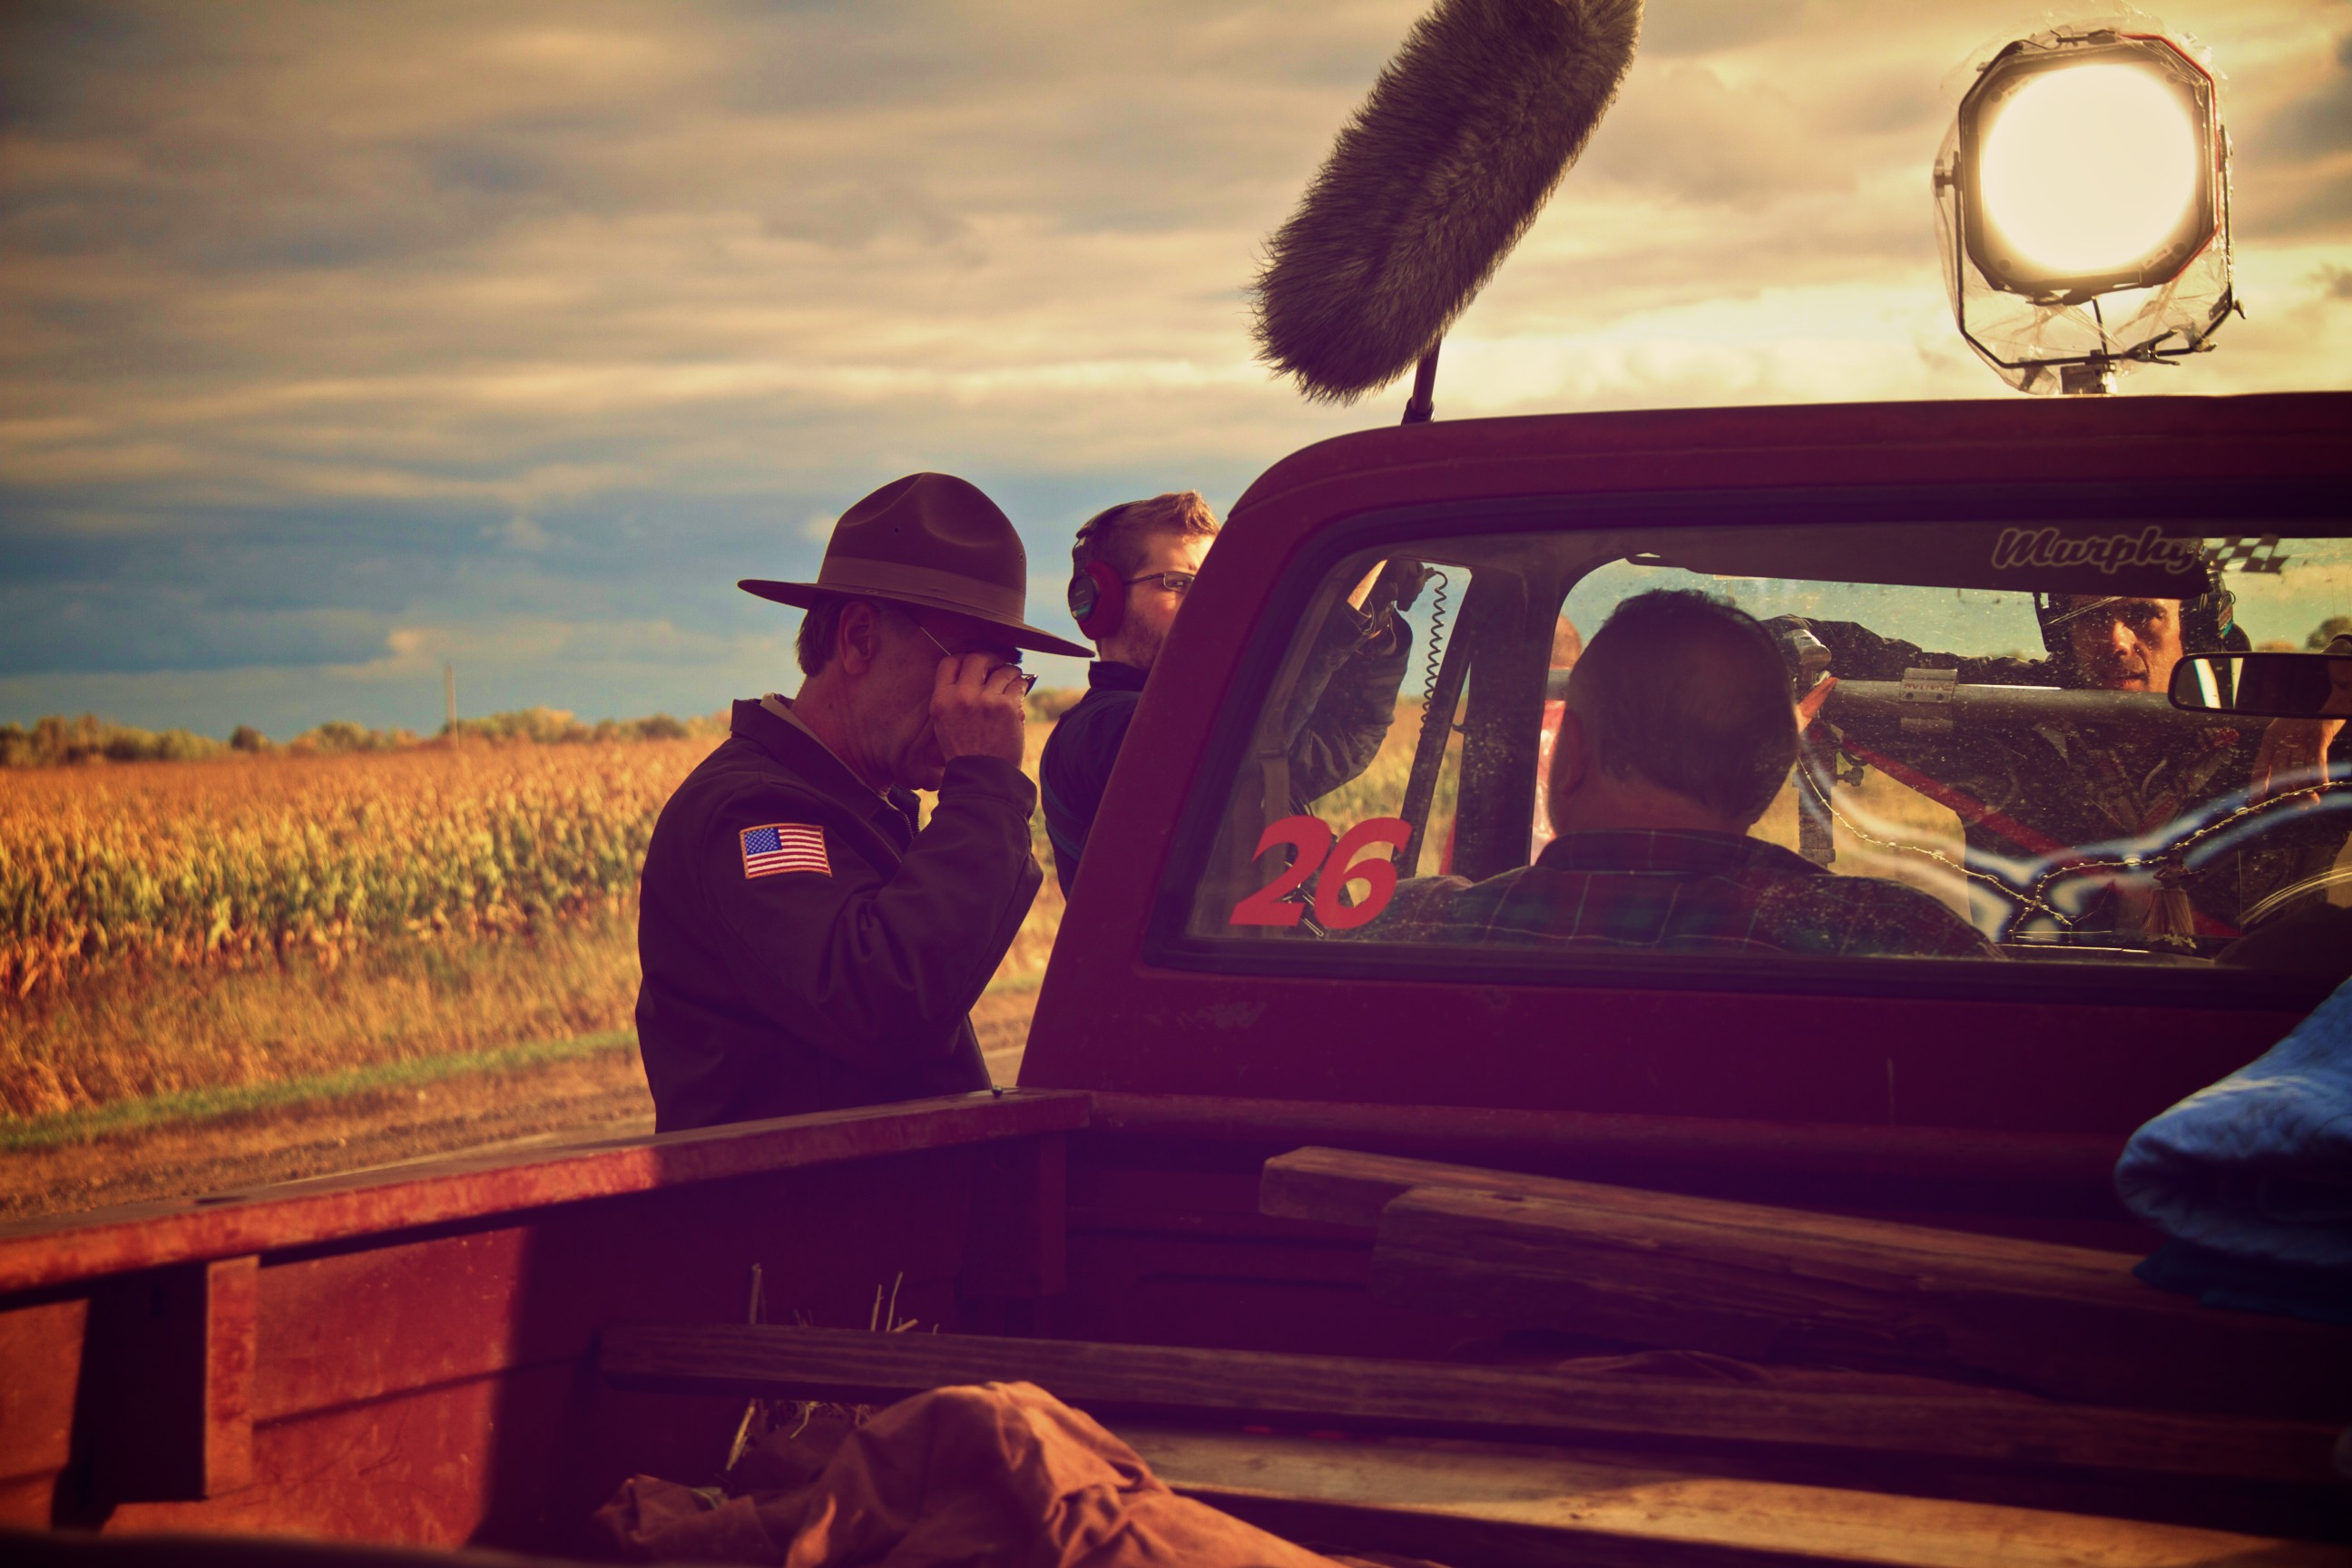 Sweet Corn _ Production Stills 733